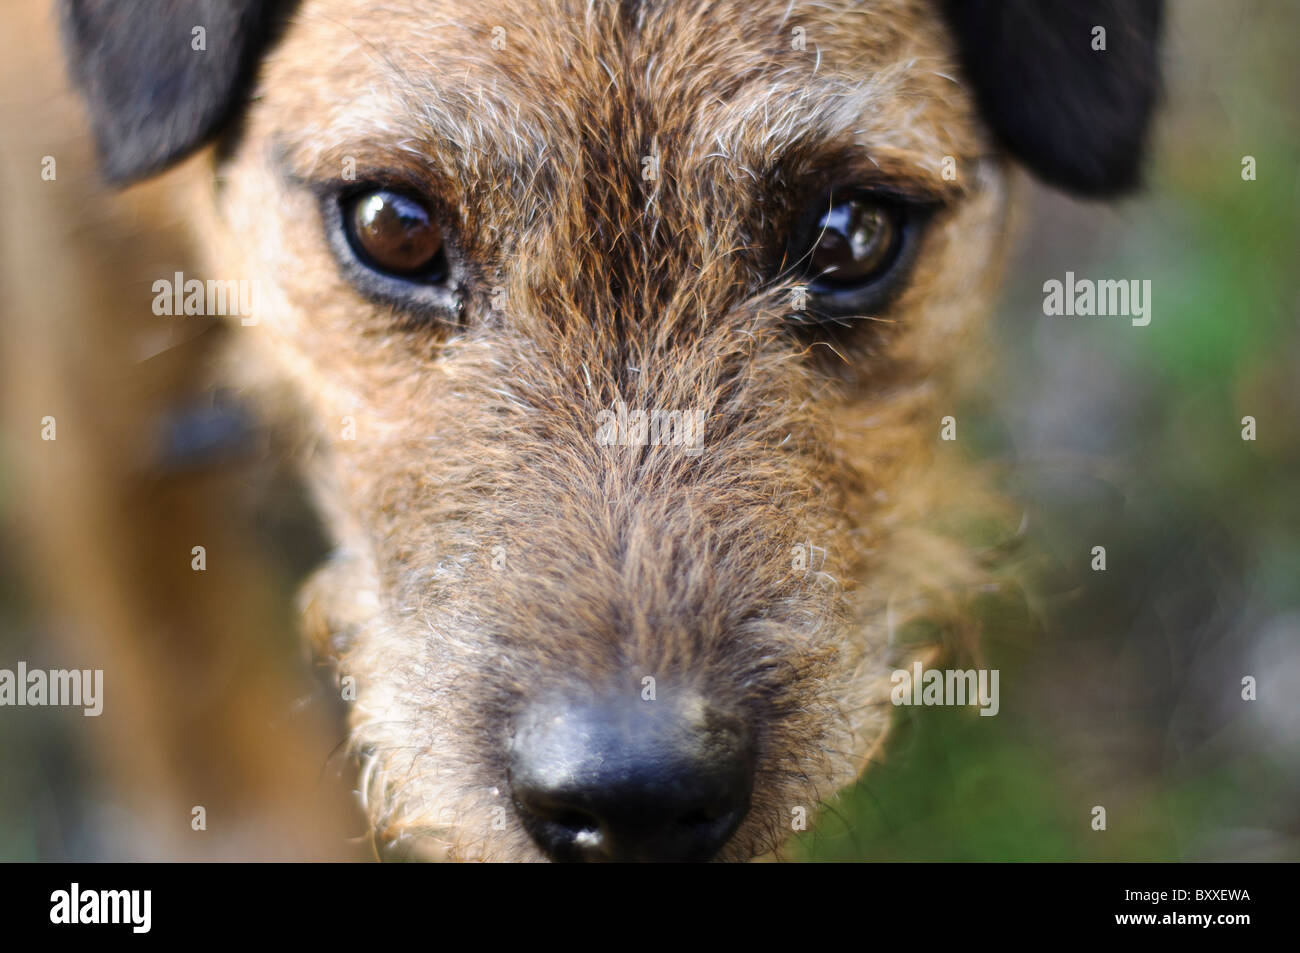 Close up of Border terrier cross Lakeland terrier's head gazing up at camera - Stock Image